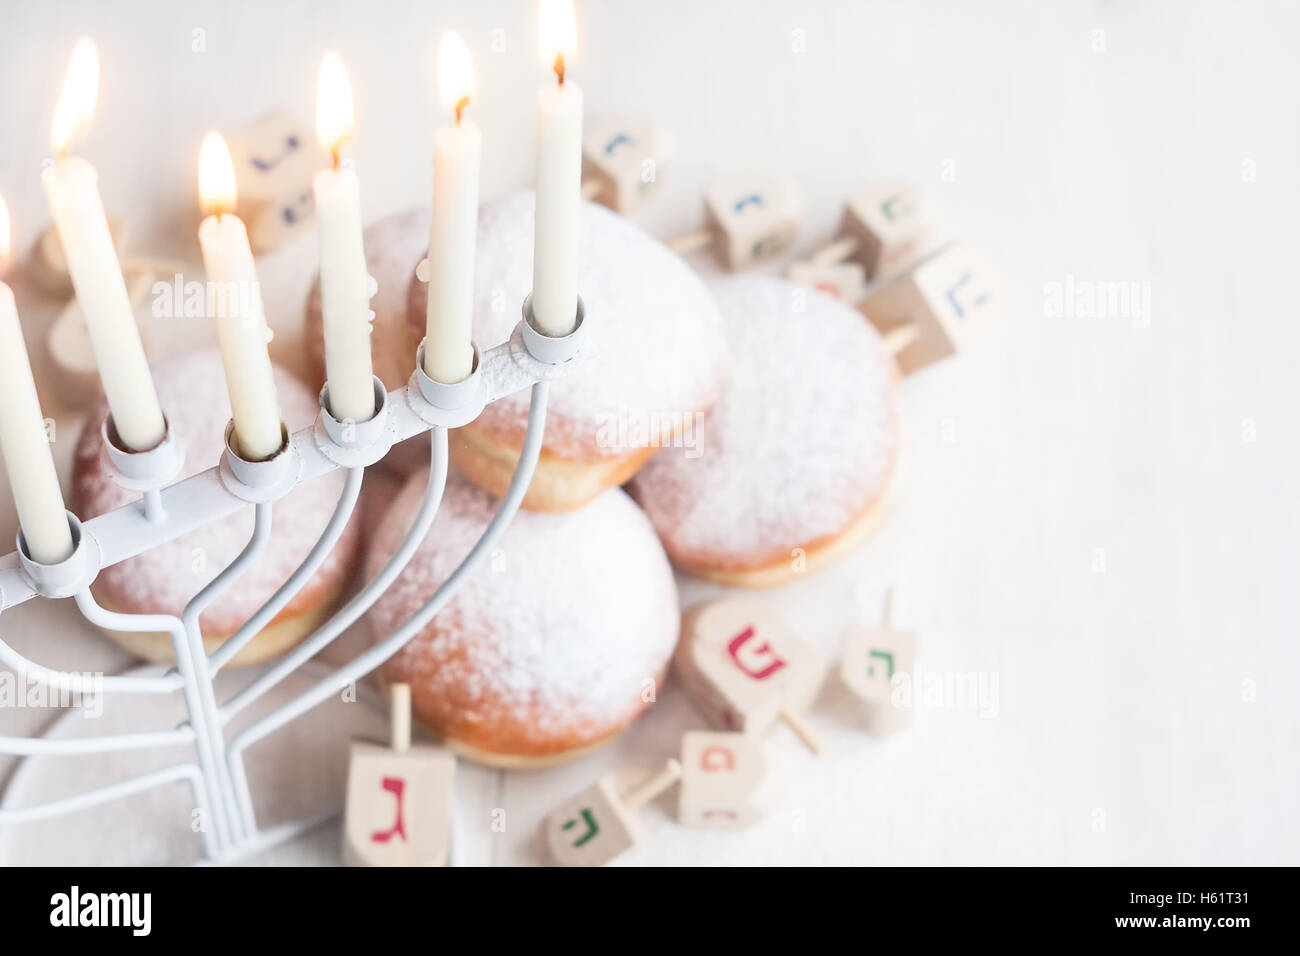 Jewish traditional holiday Hannukah with menorah, doughnuts and dreidles. Copy paste background. - Stock Image